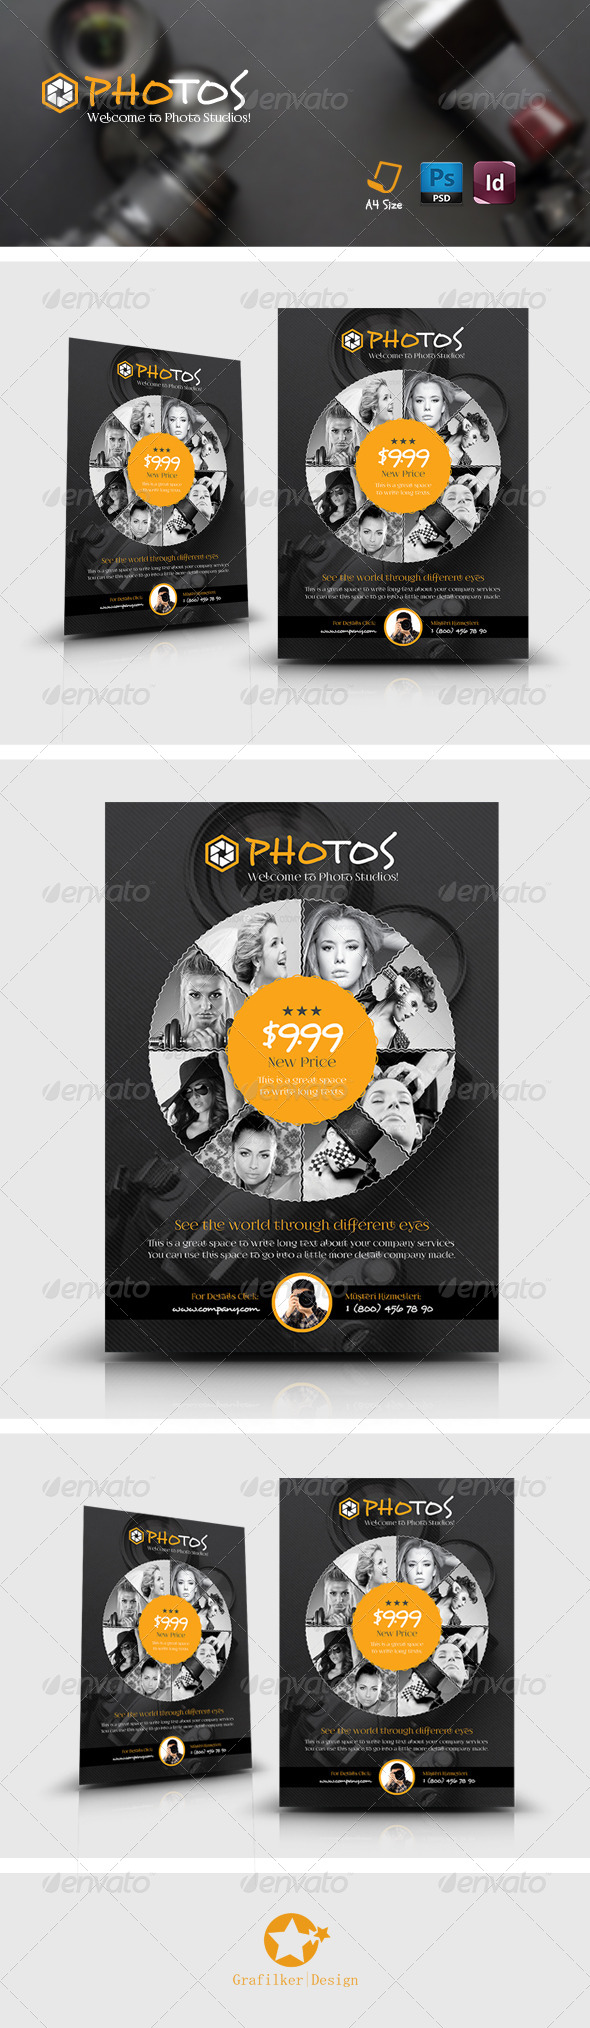 GraphicRiver Photography Flyer Templates 7655555